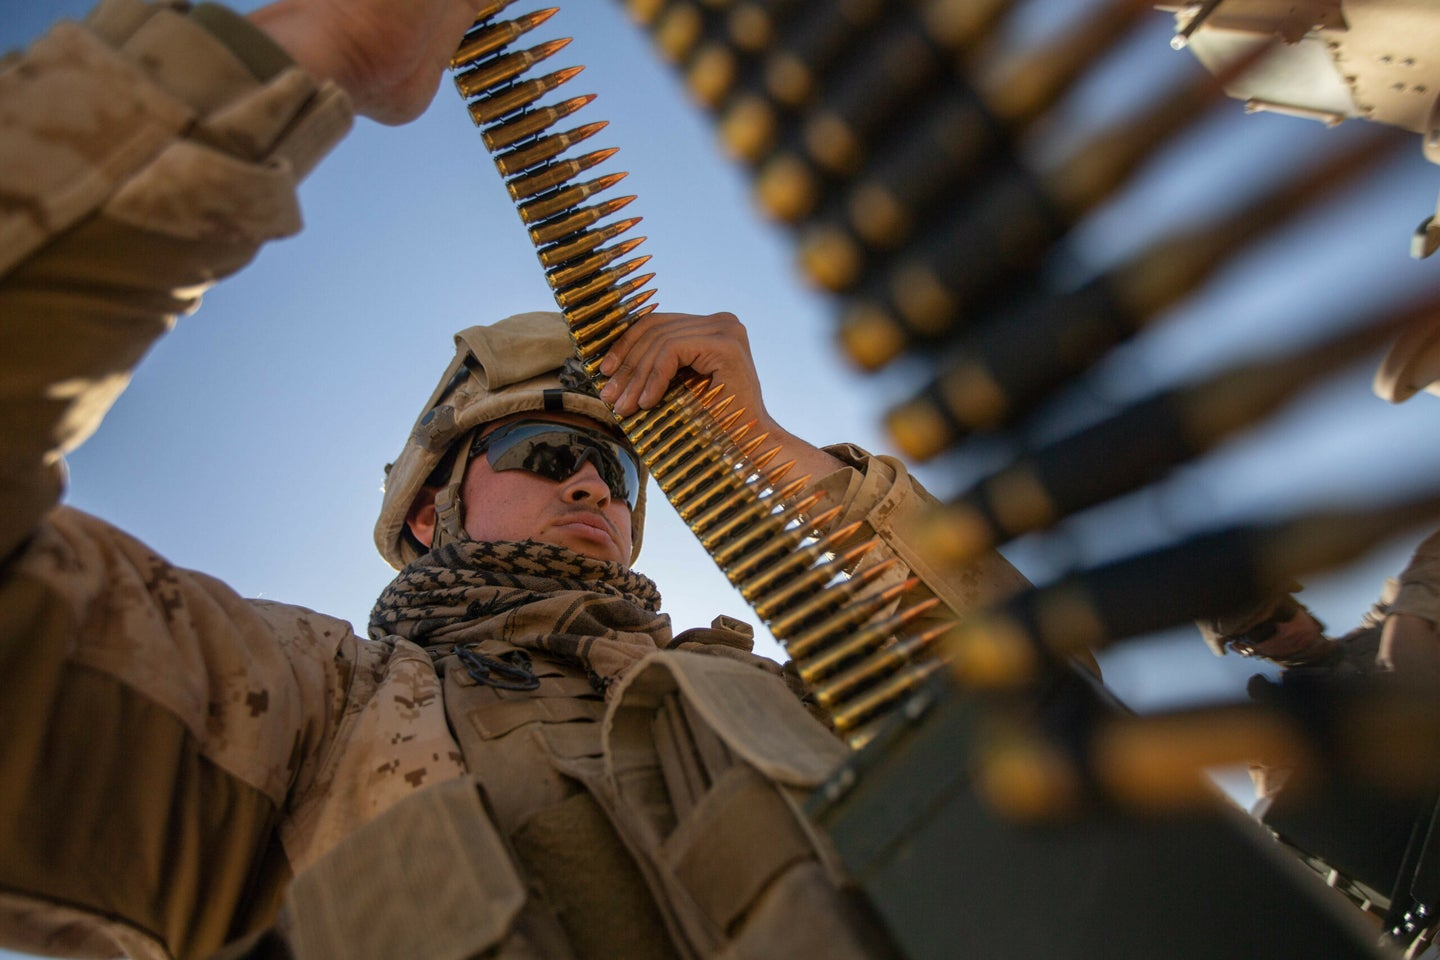 The military has its own ammo production plant and rarely uses civilian ammo plant capacity for its munitions.